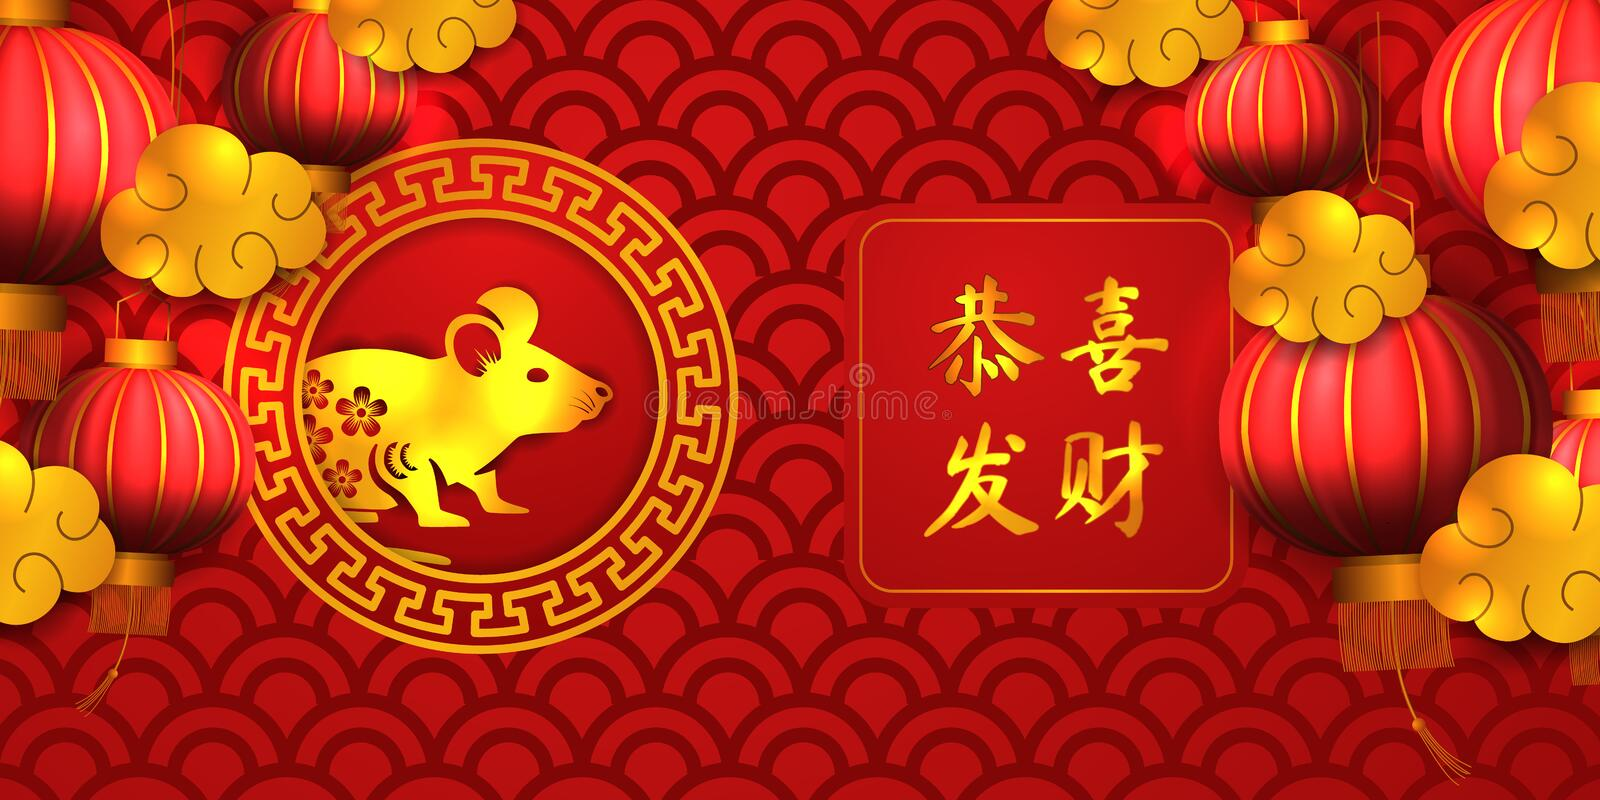 Happy chinese new year. 2020 year of rat or mouse. golden cloud, red lantern with red ornament background royalty free illustration